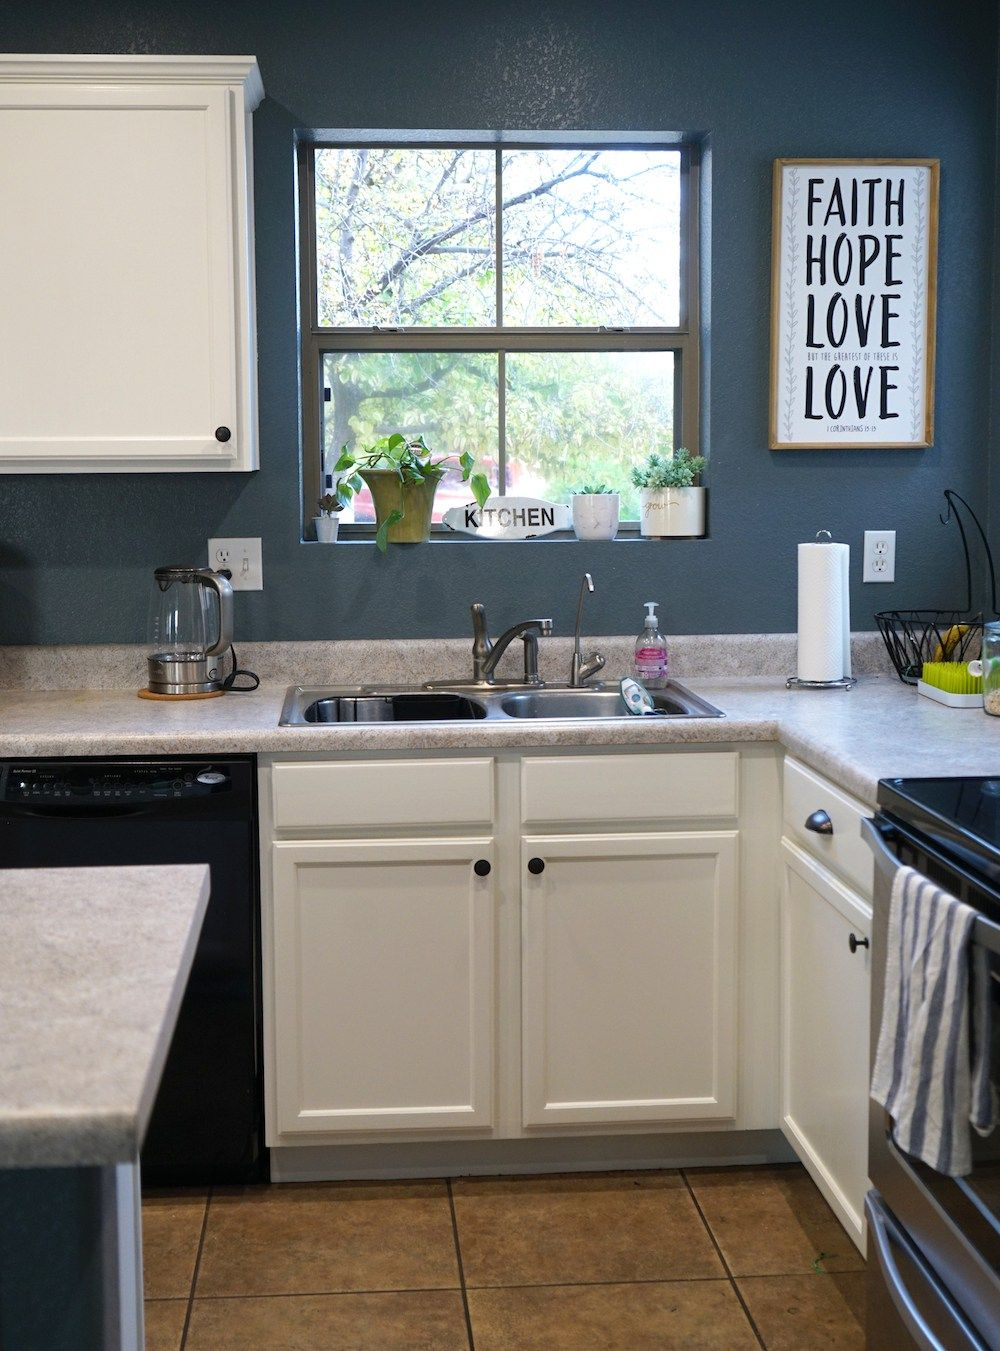 How to Paint Kitchen Cabinets White | Painting kitchen ...